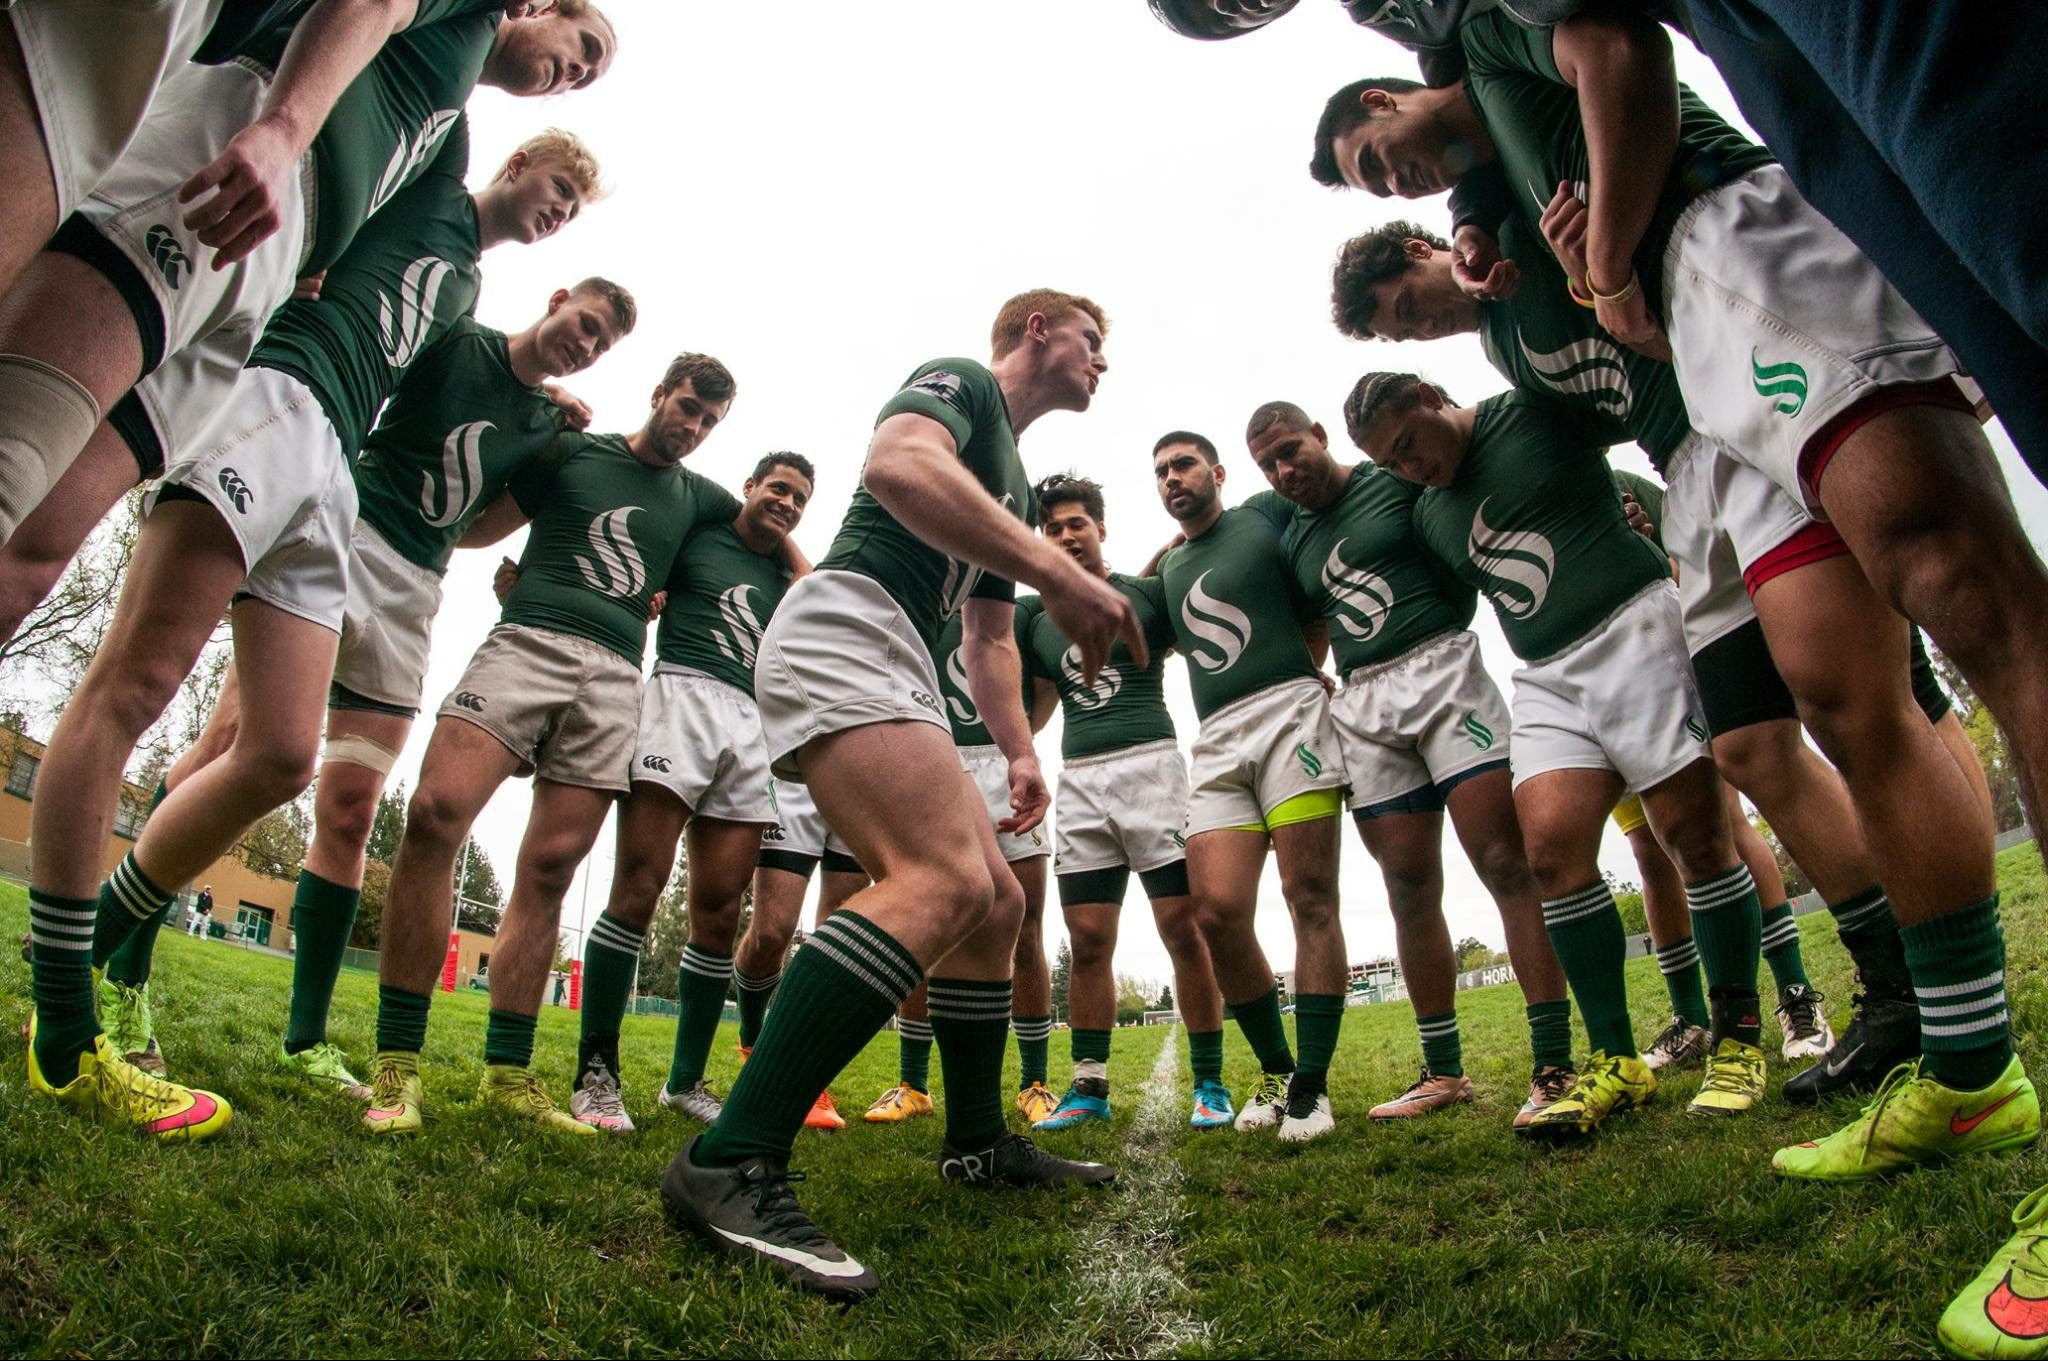 Sacramento State men's rugby club captain and senior Nick Weeder motivates his teammates before a match. (Photo Courtesy of Sac State Sport Clubs)